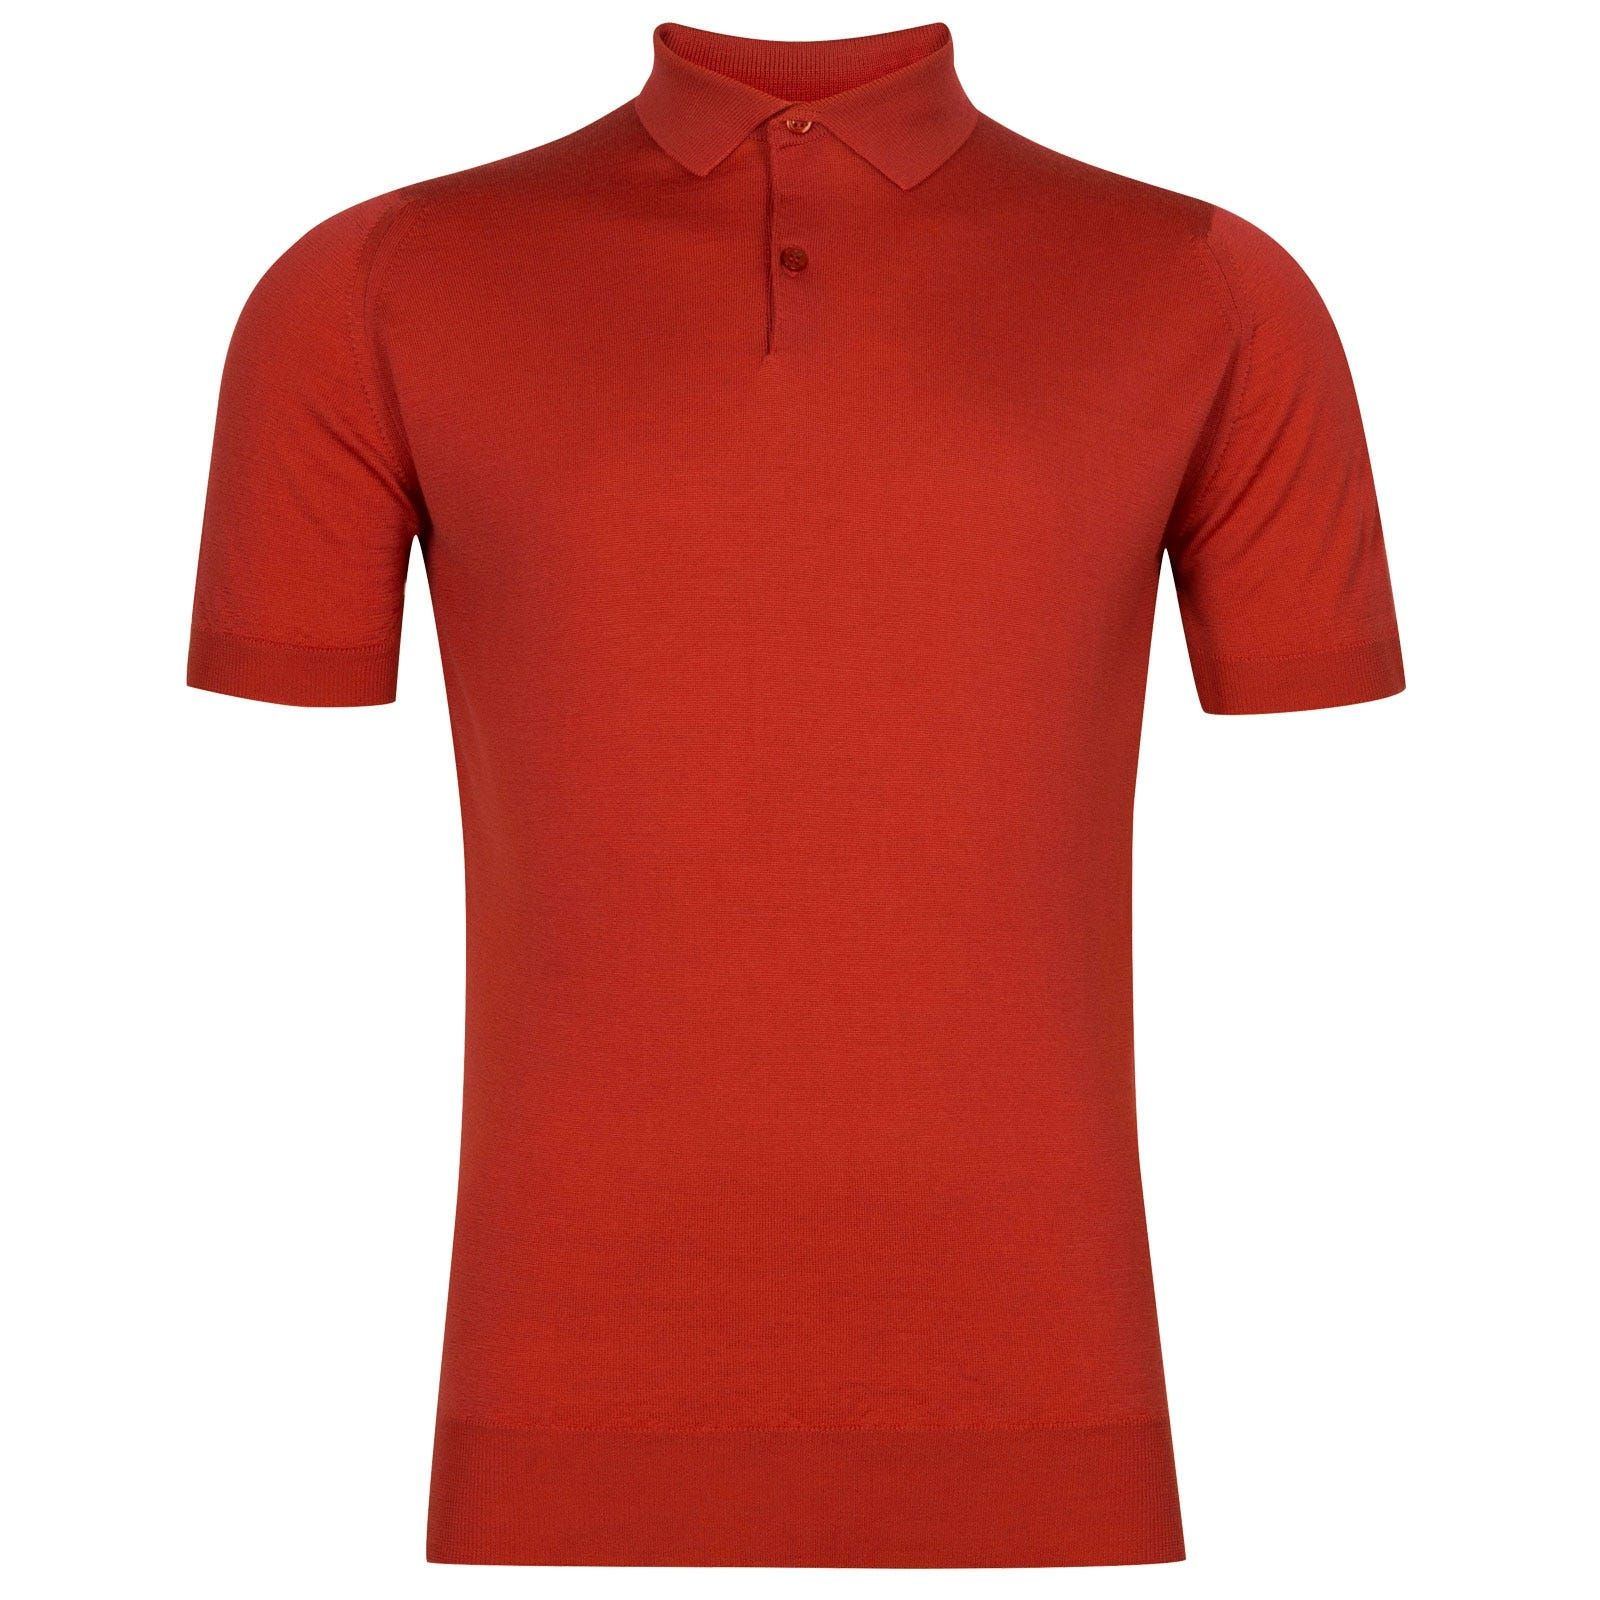 John Smedley Payton in Red Admiral Shirt-XLG